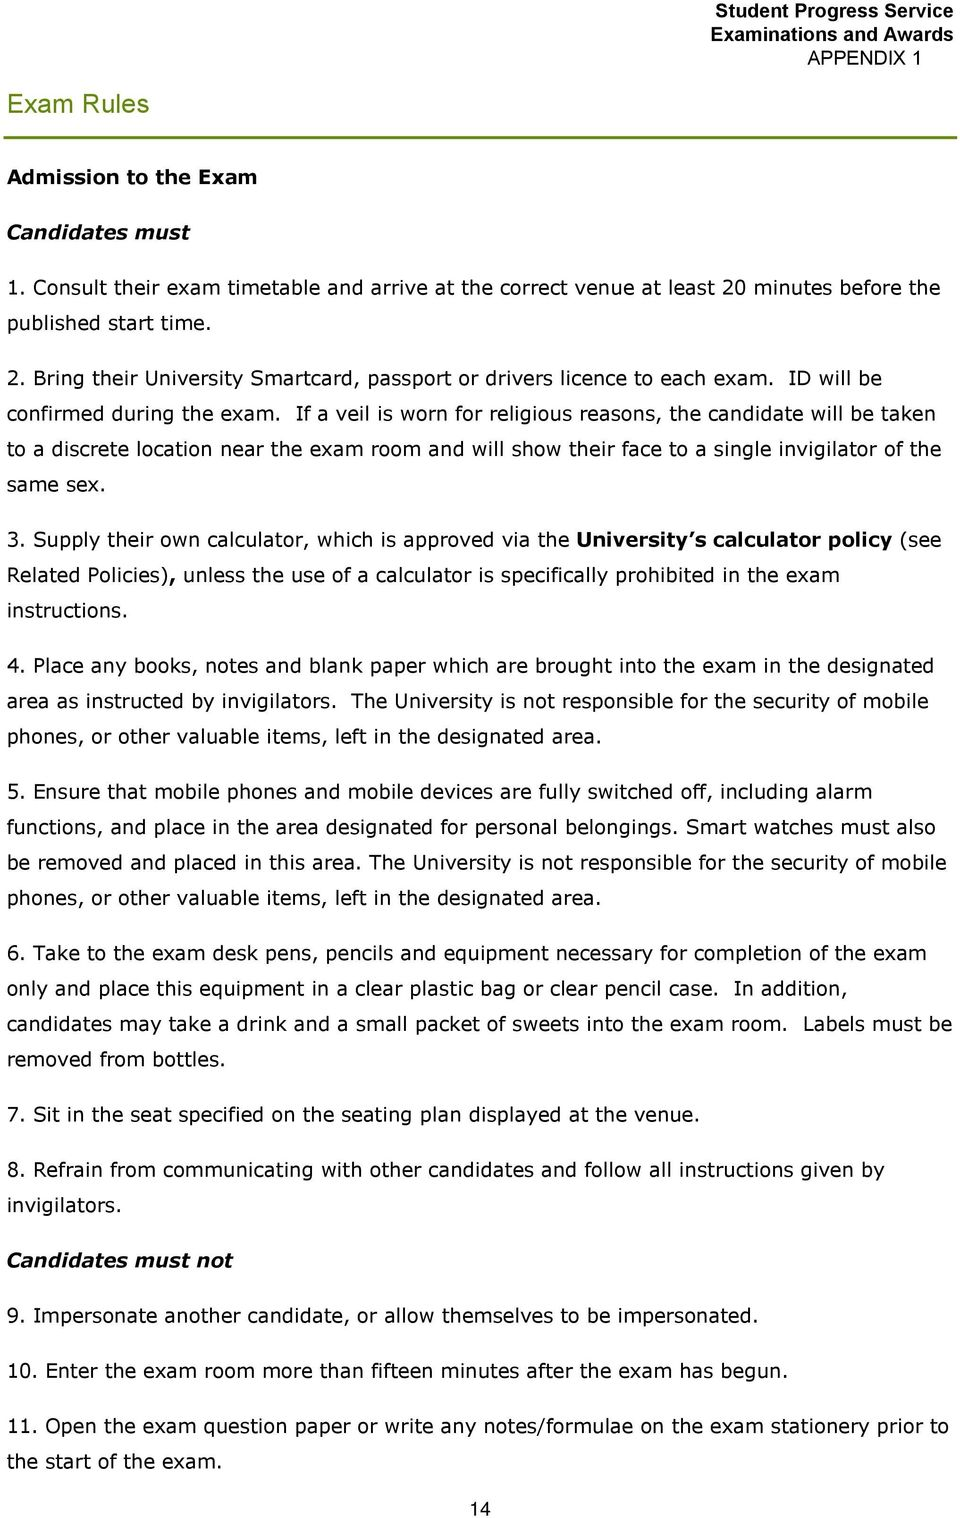 Examination Procedures and Guidelines for Senior